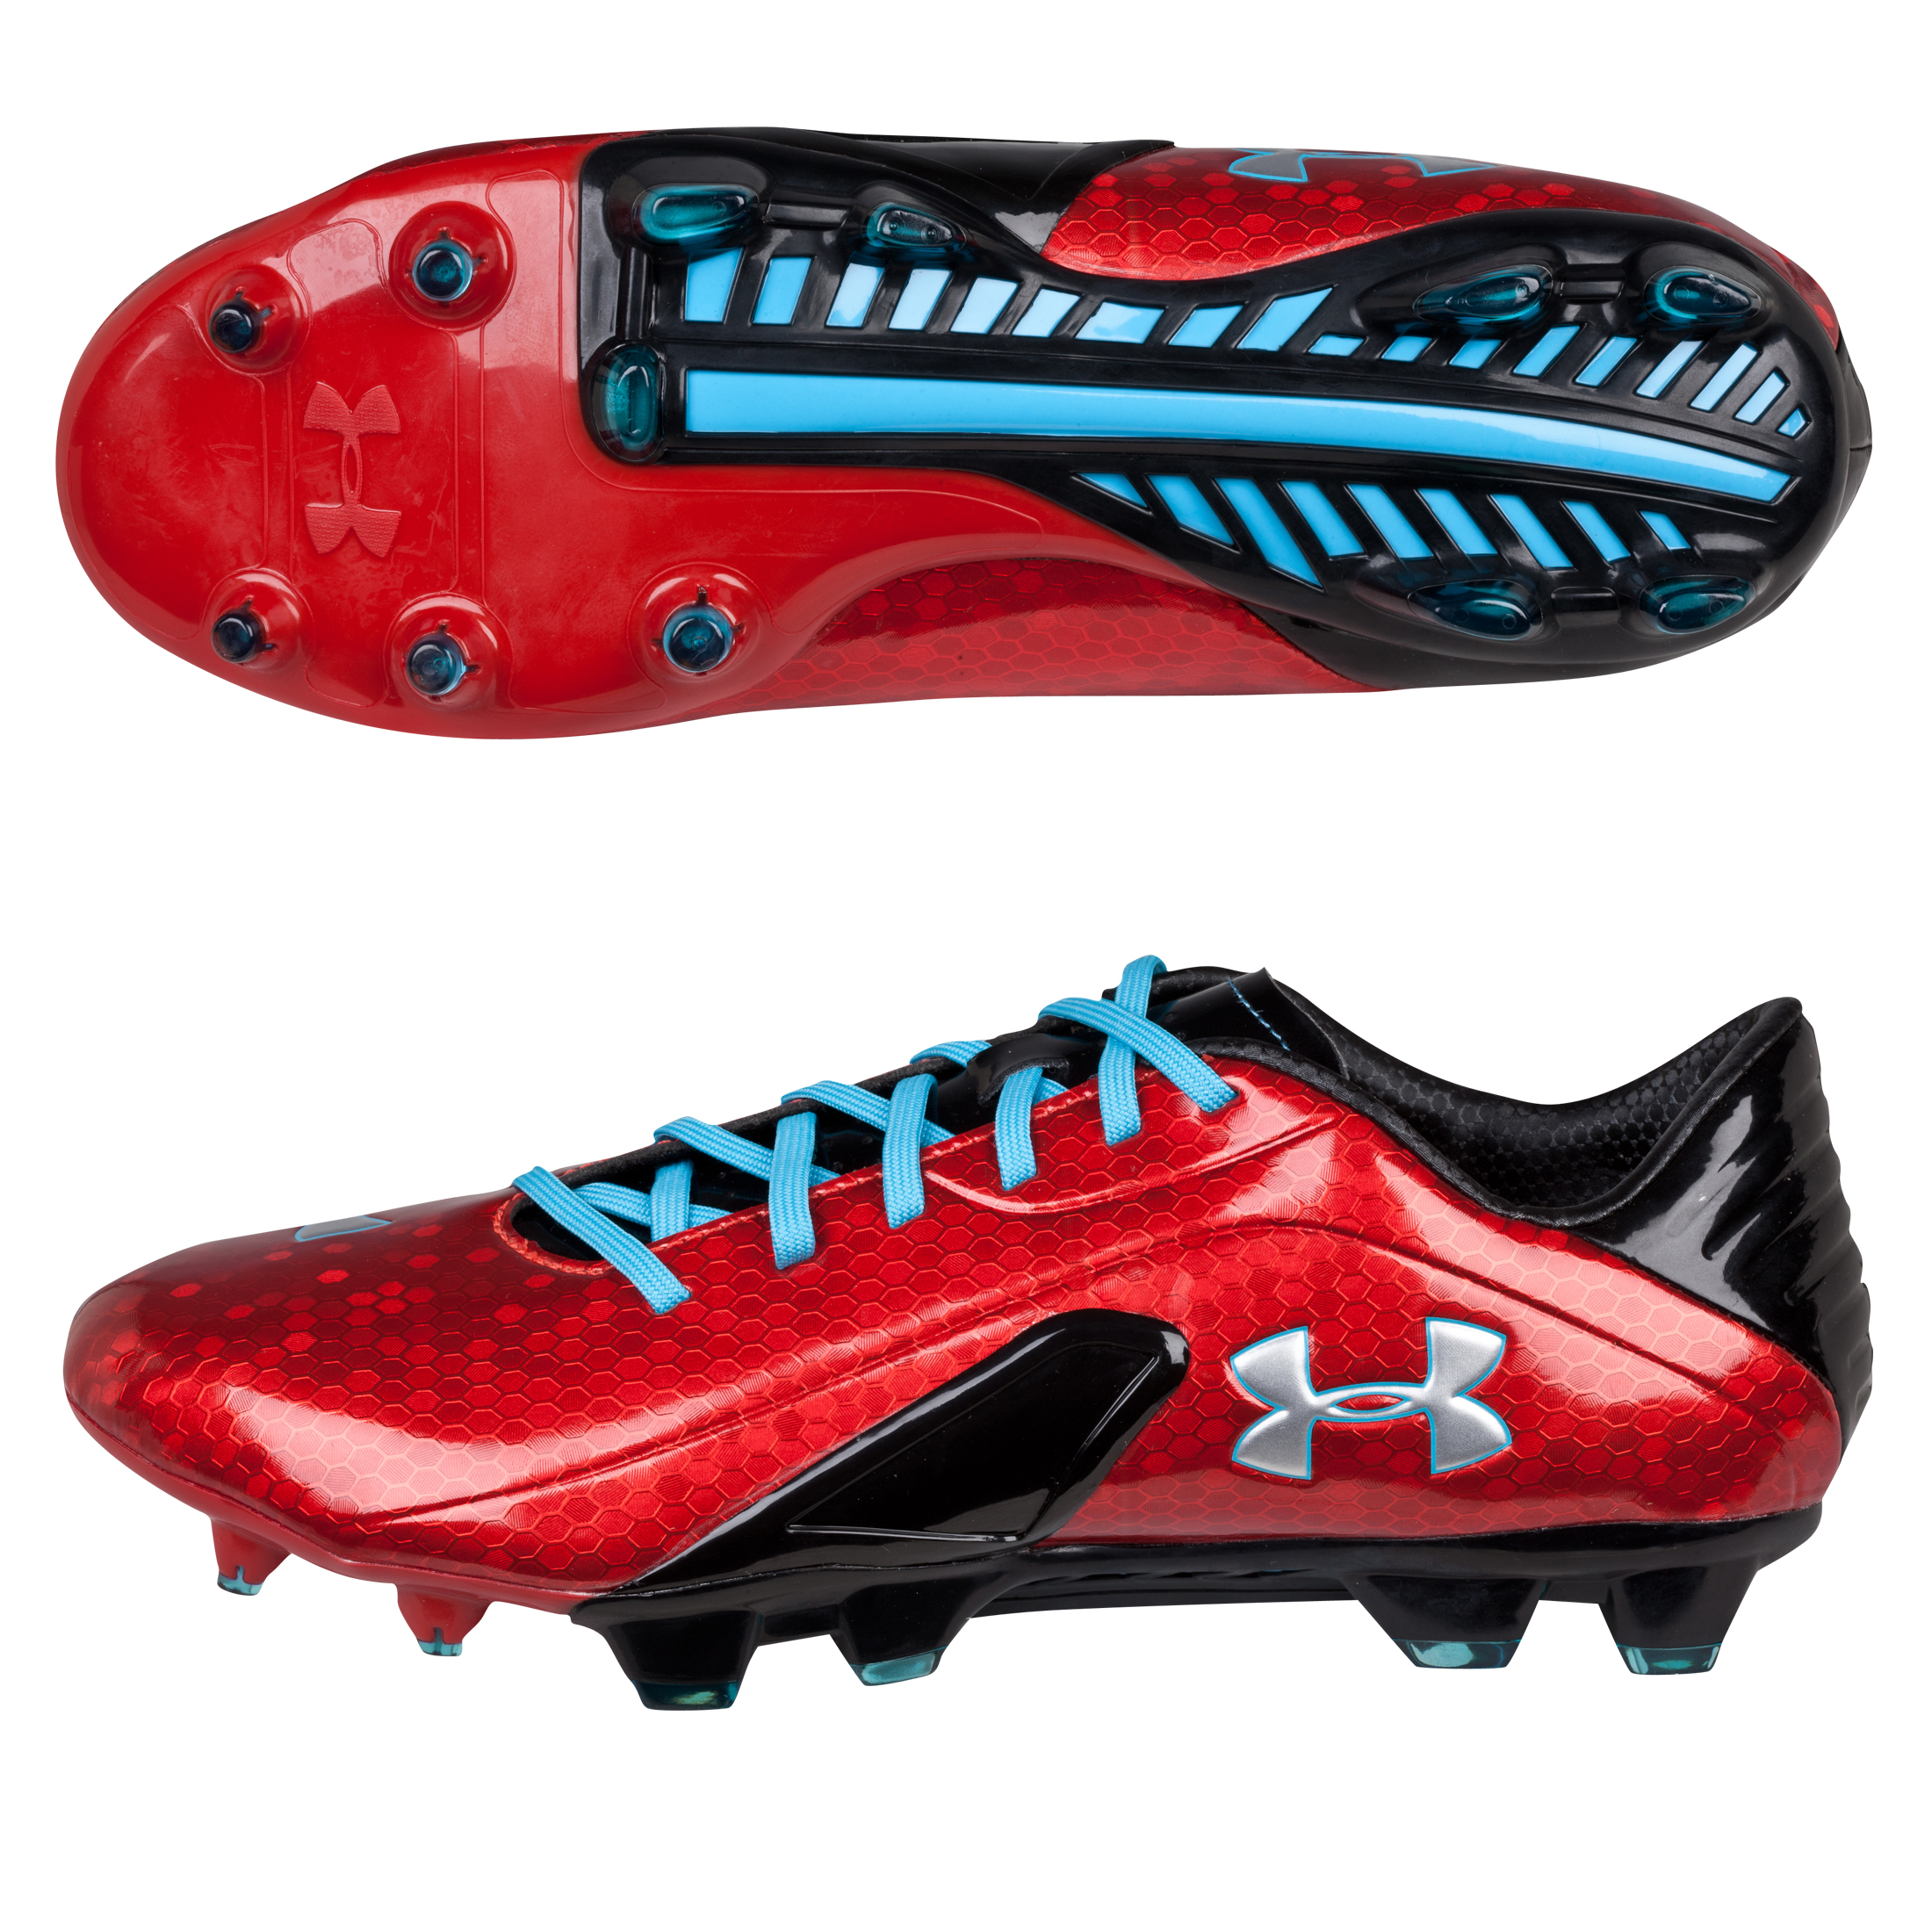 Under Armour Spine Blur III Firm Ground Football Boots-Red/Blk/Blue Red